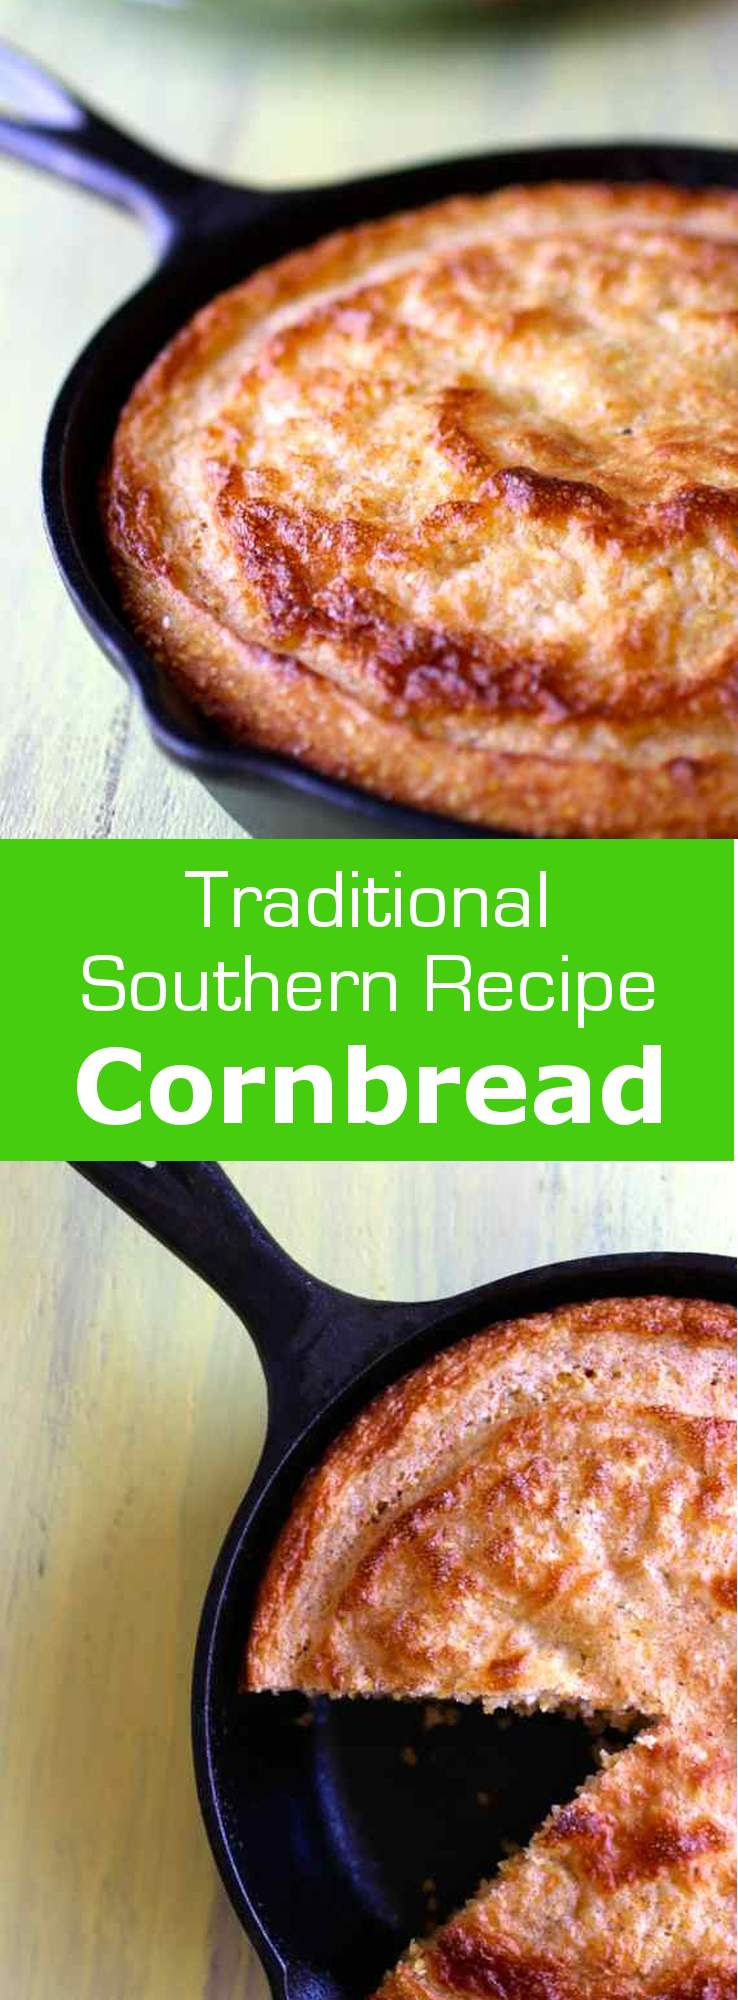 Cornbread Traditional Southern Recipe Flavors - United states of america cuisine